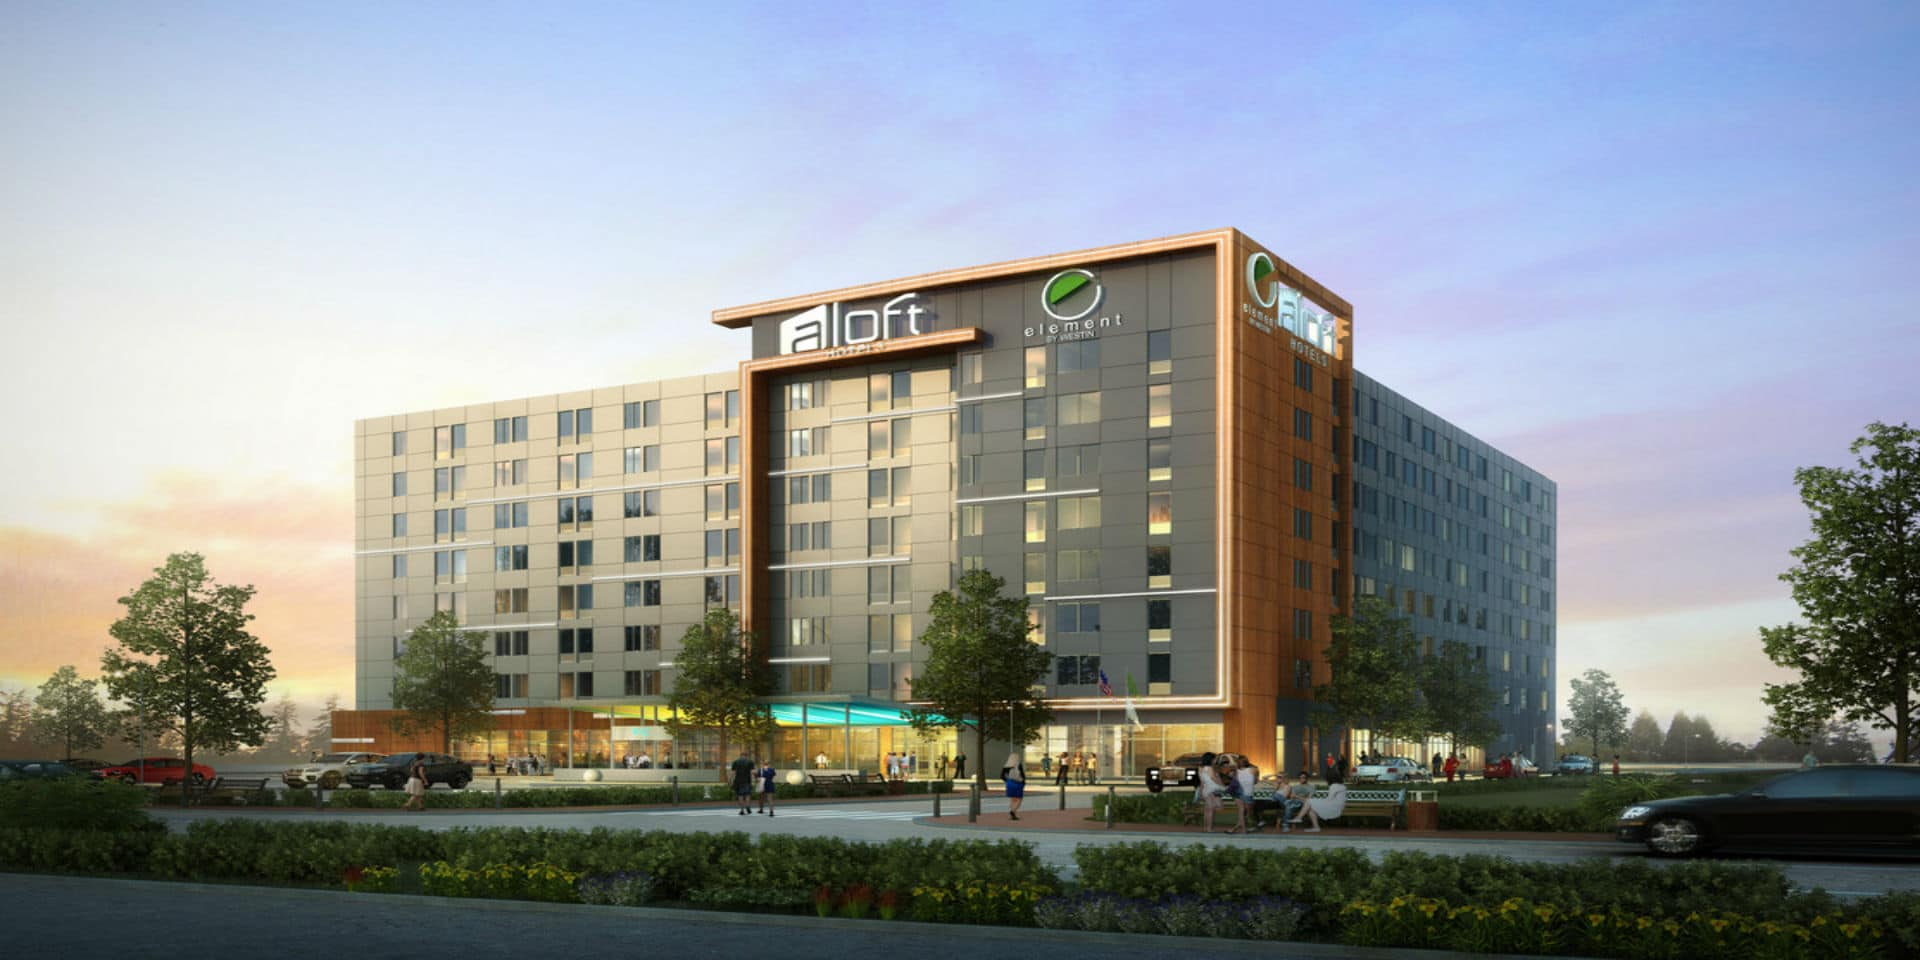 Calling all owners: understanding nuances of hotel real estate investment